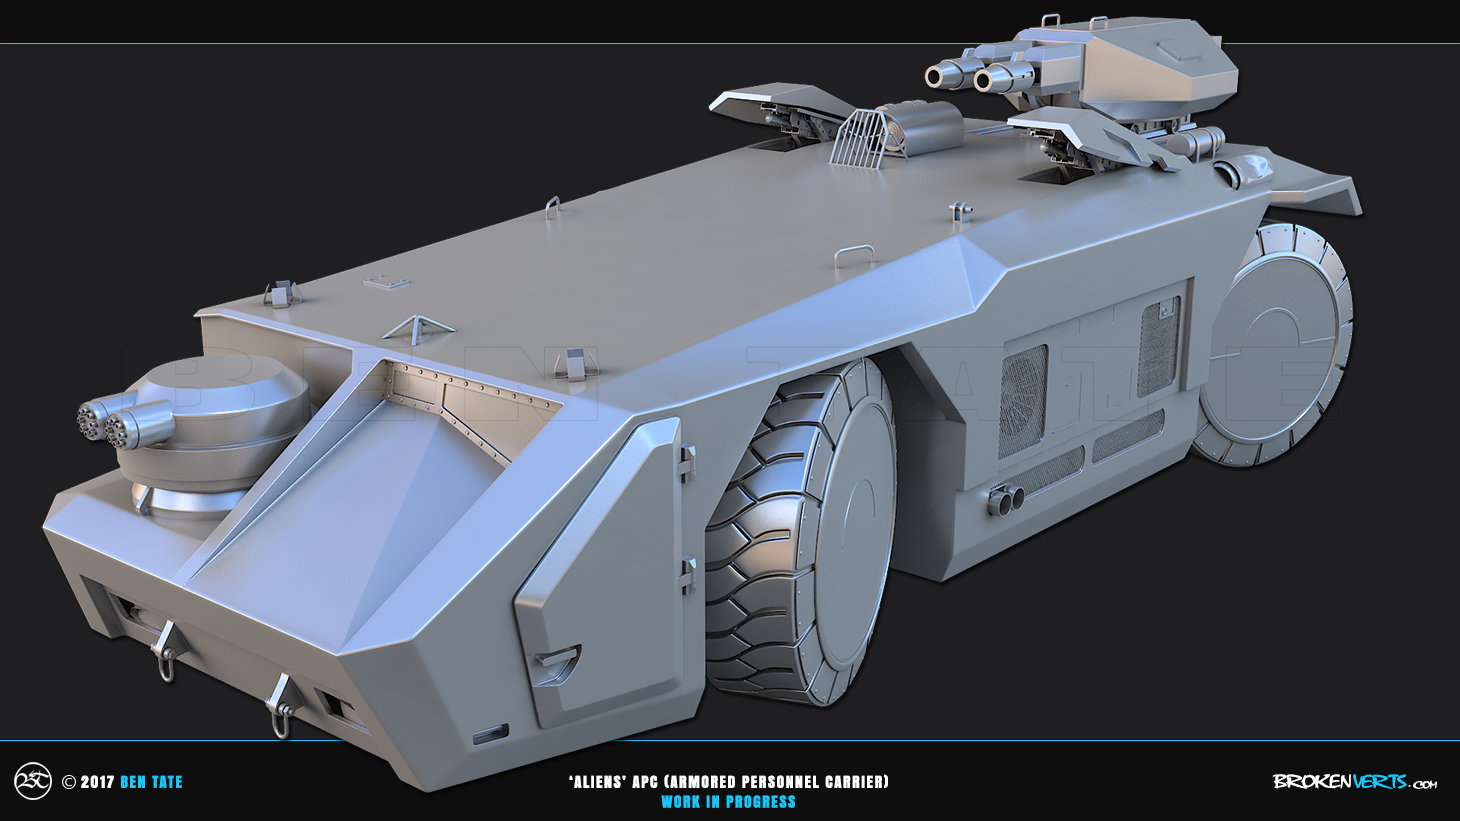 Ben Tate 3ds Max - Aliens APC (Armored Personnel Carrier) Model CG VFX